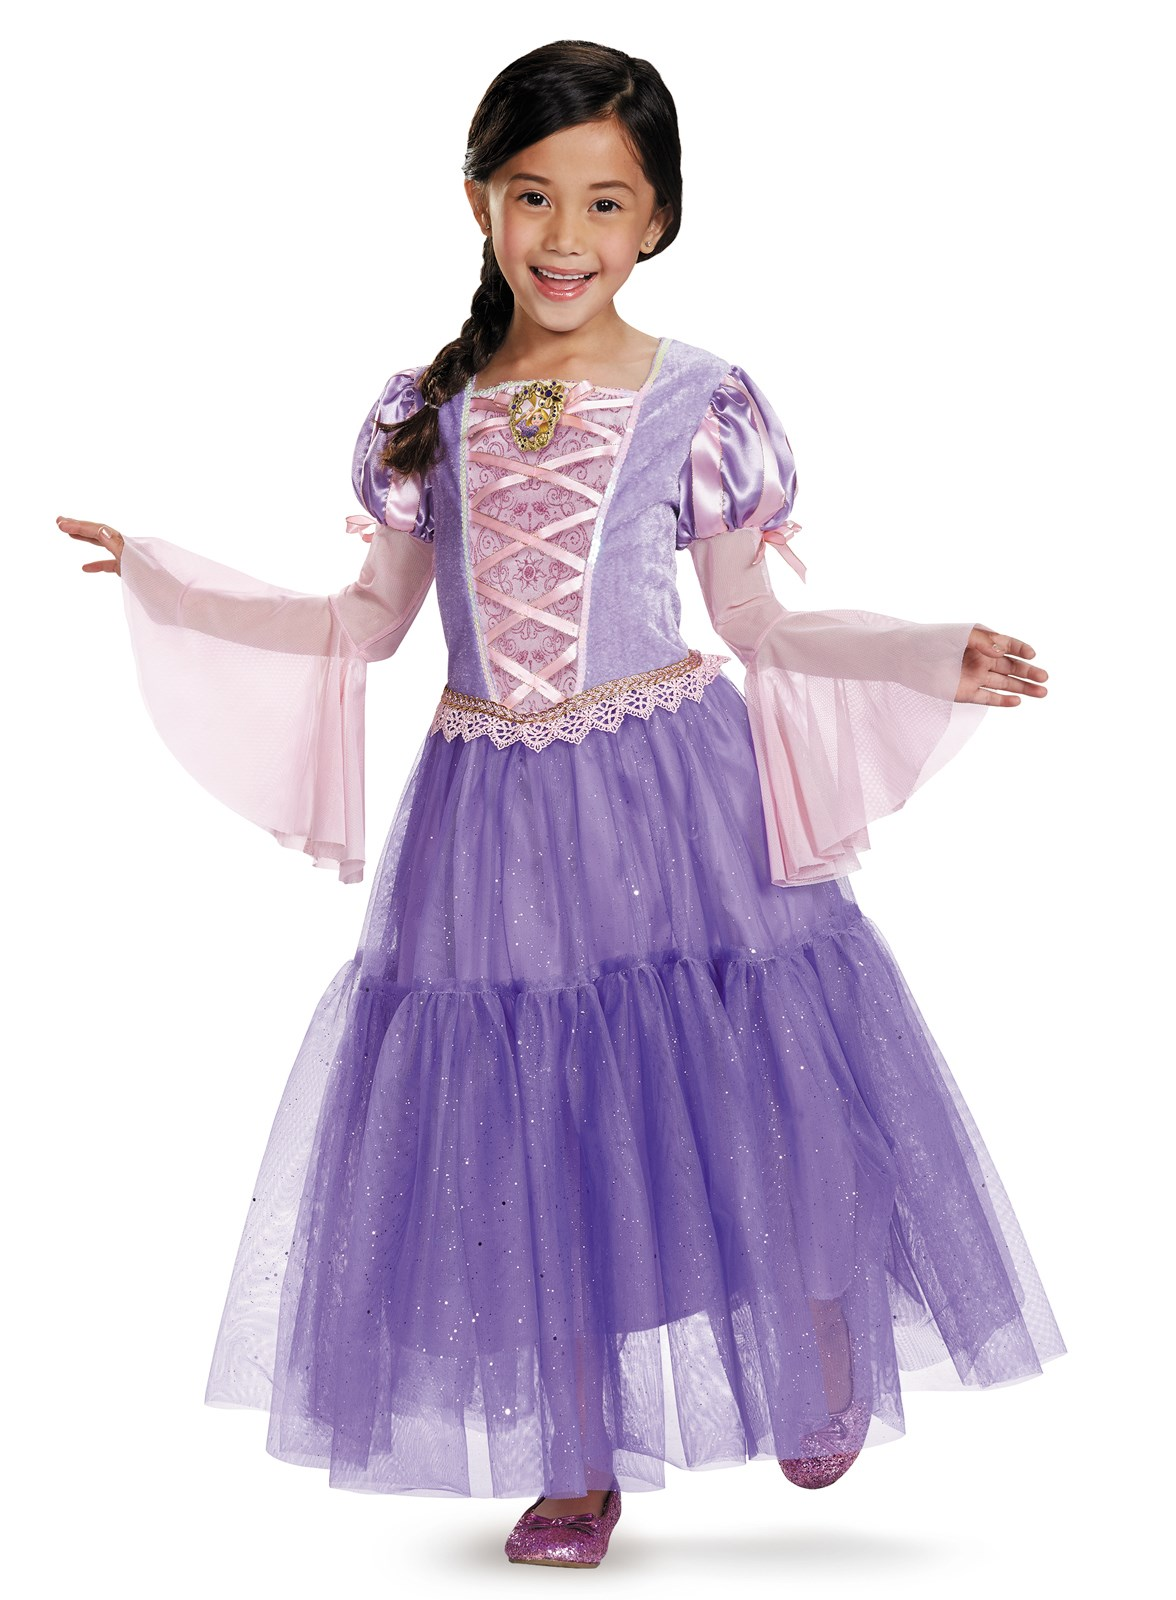 Tangled - Rapunzel Lame Deluxe Toddler / Child Costume Small (4/6x)